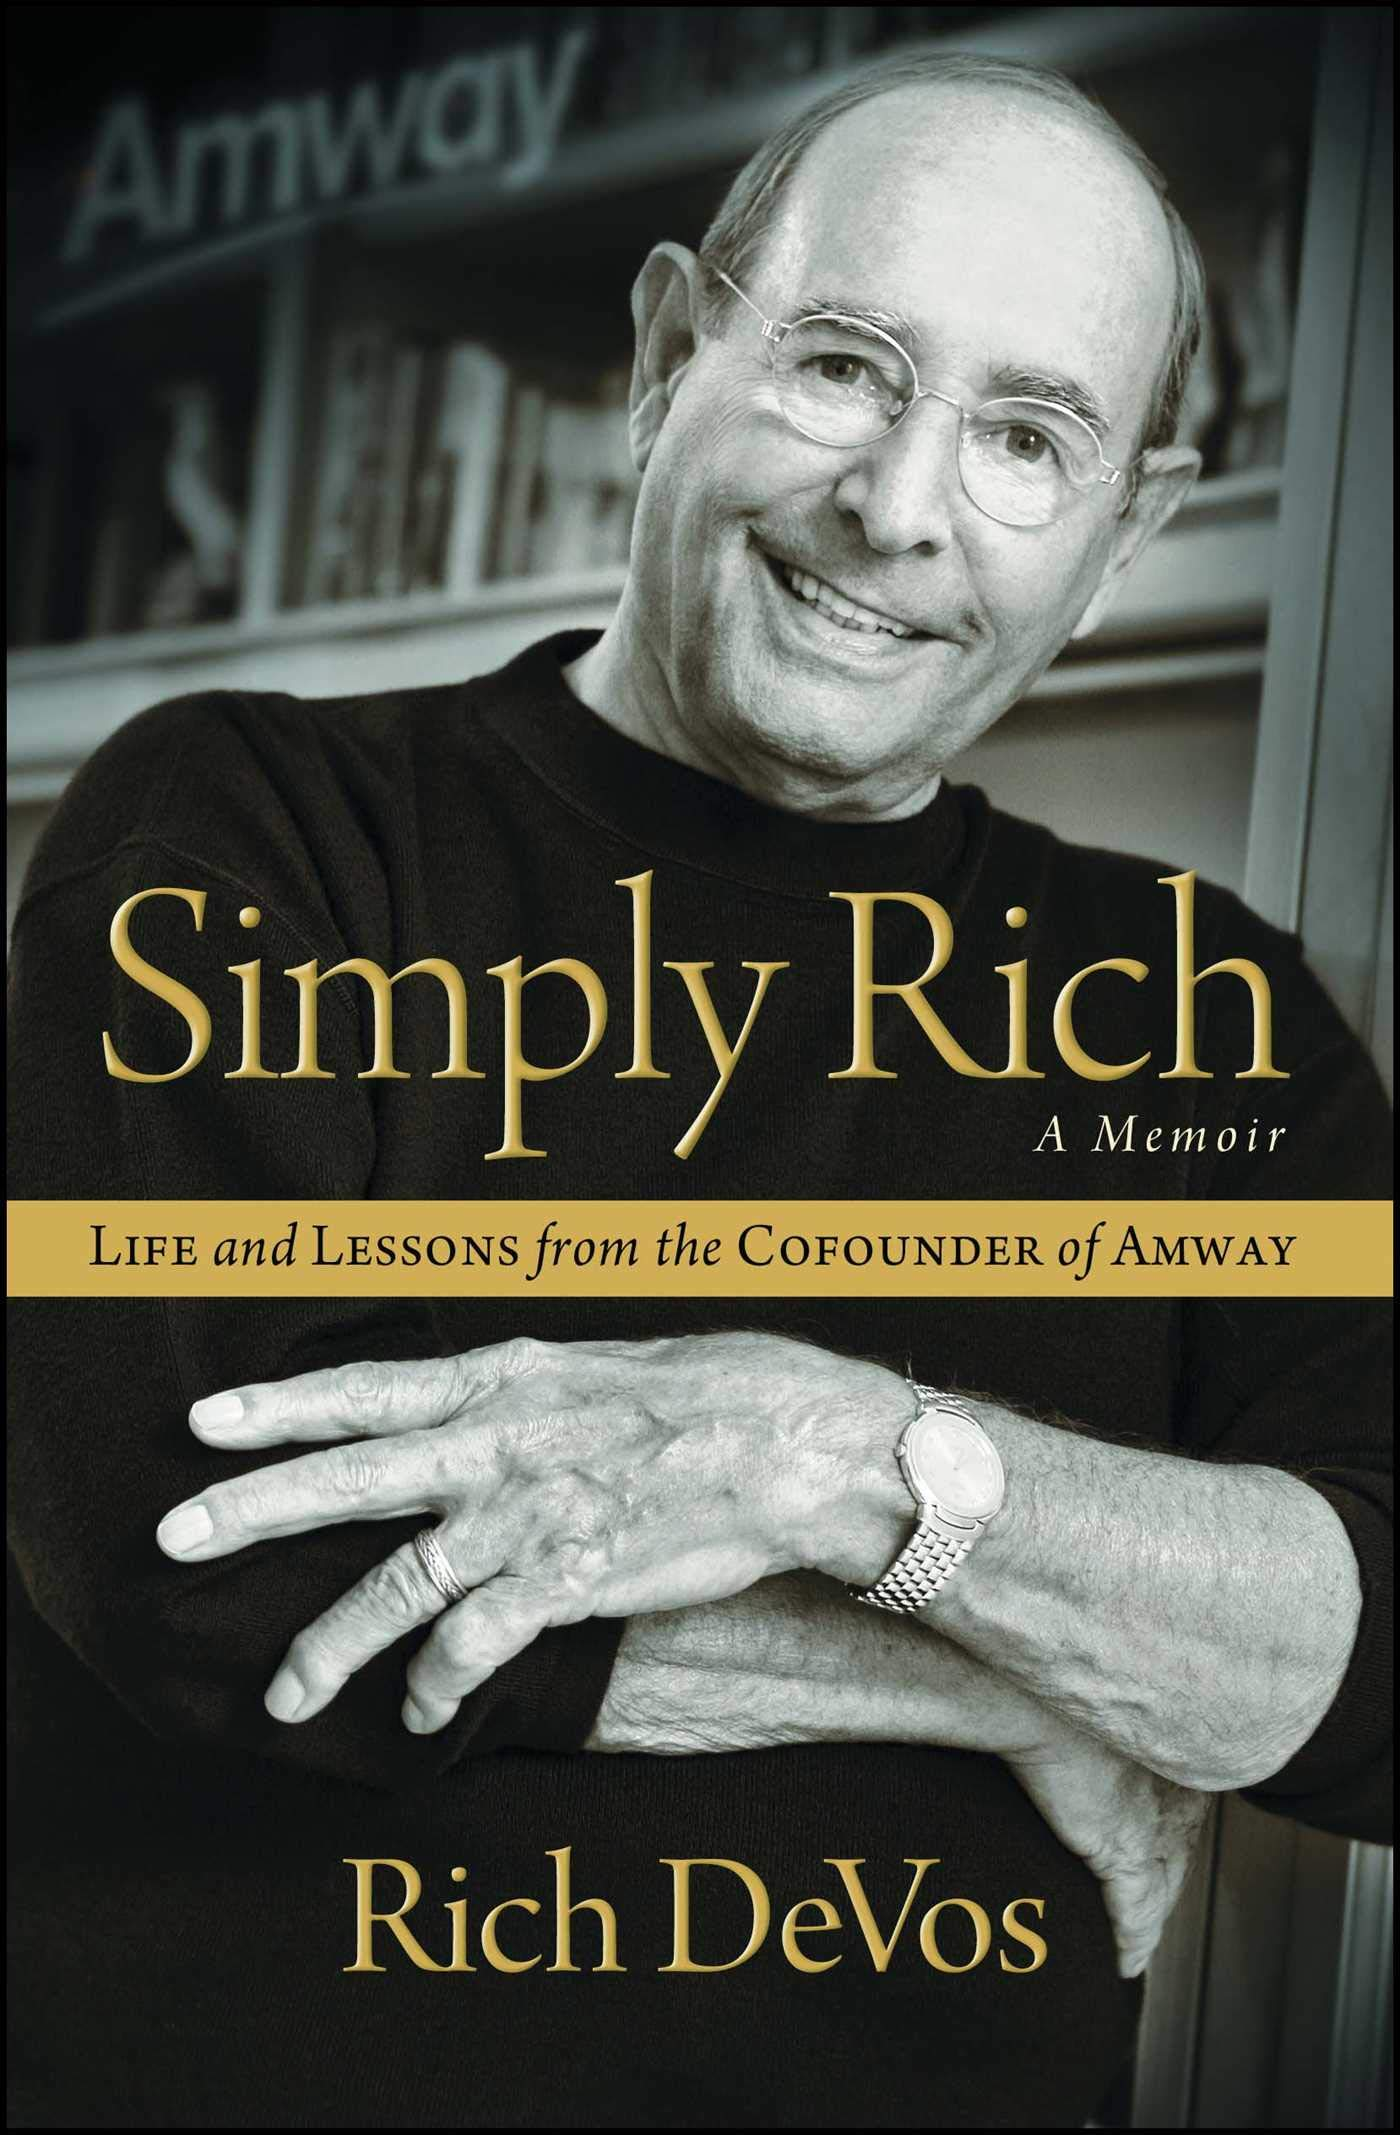 Image result for 'Simply Rich' by Richard DeVos